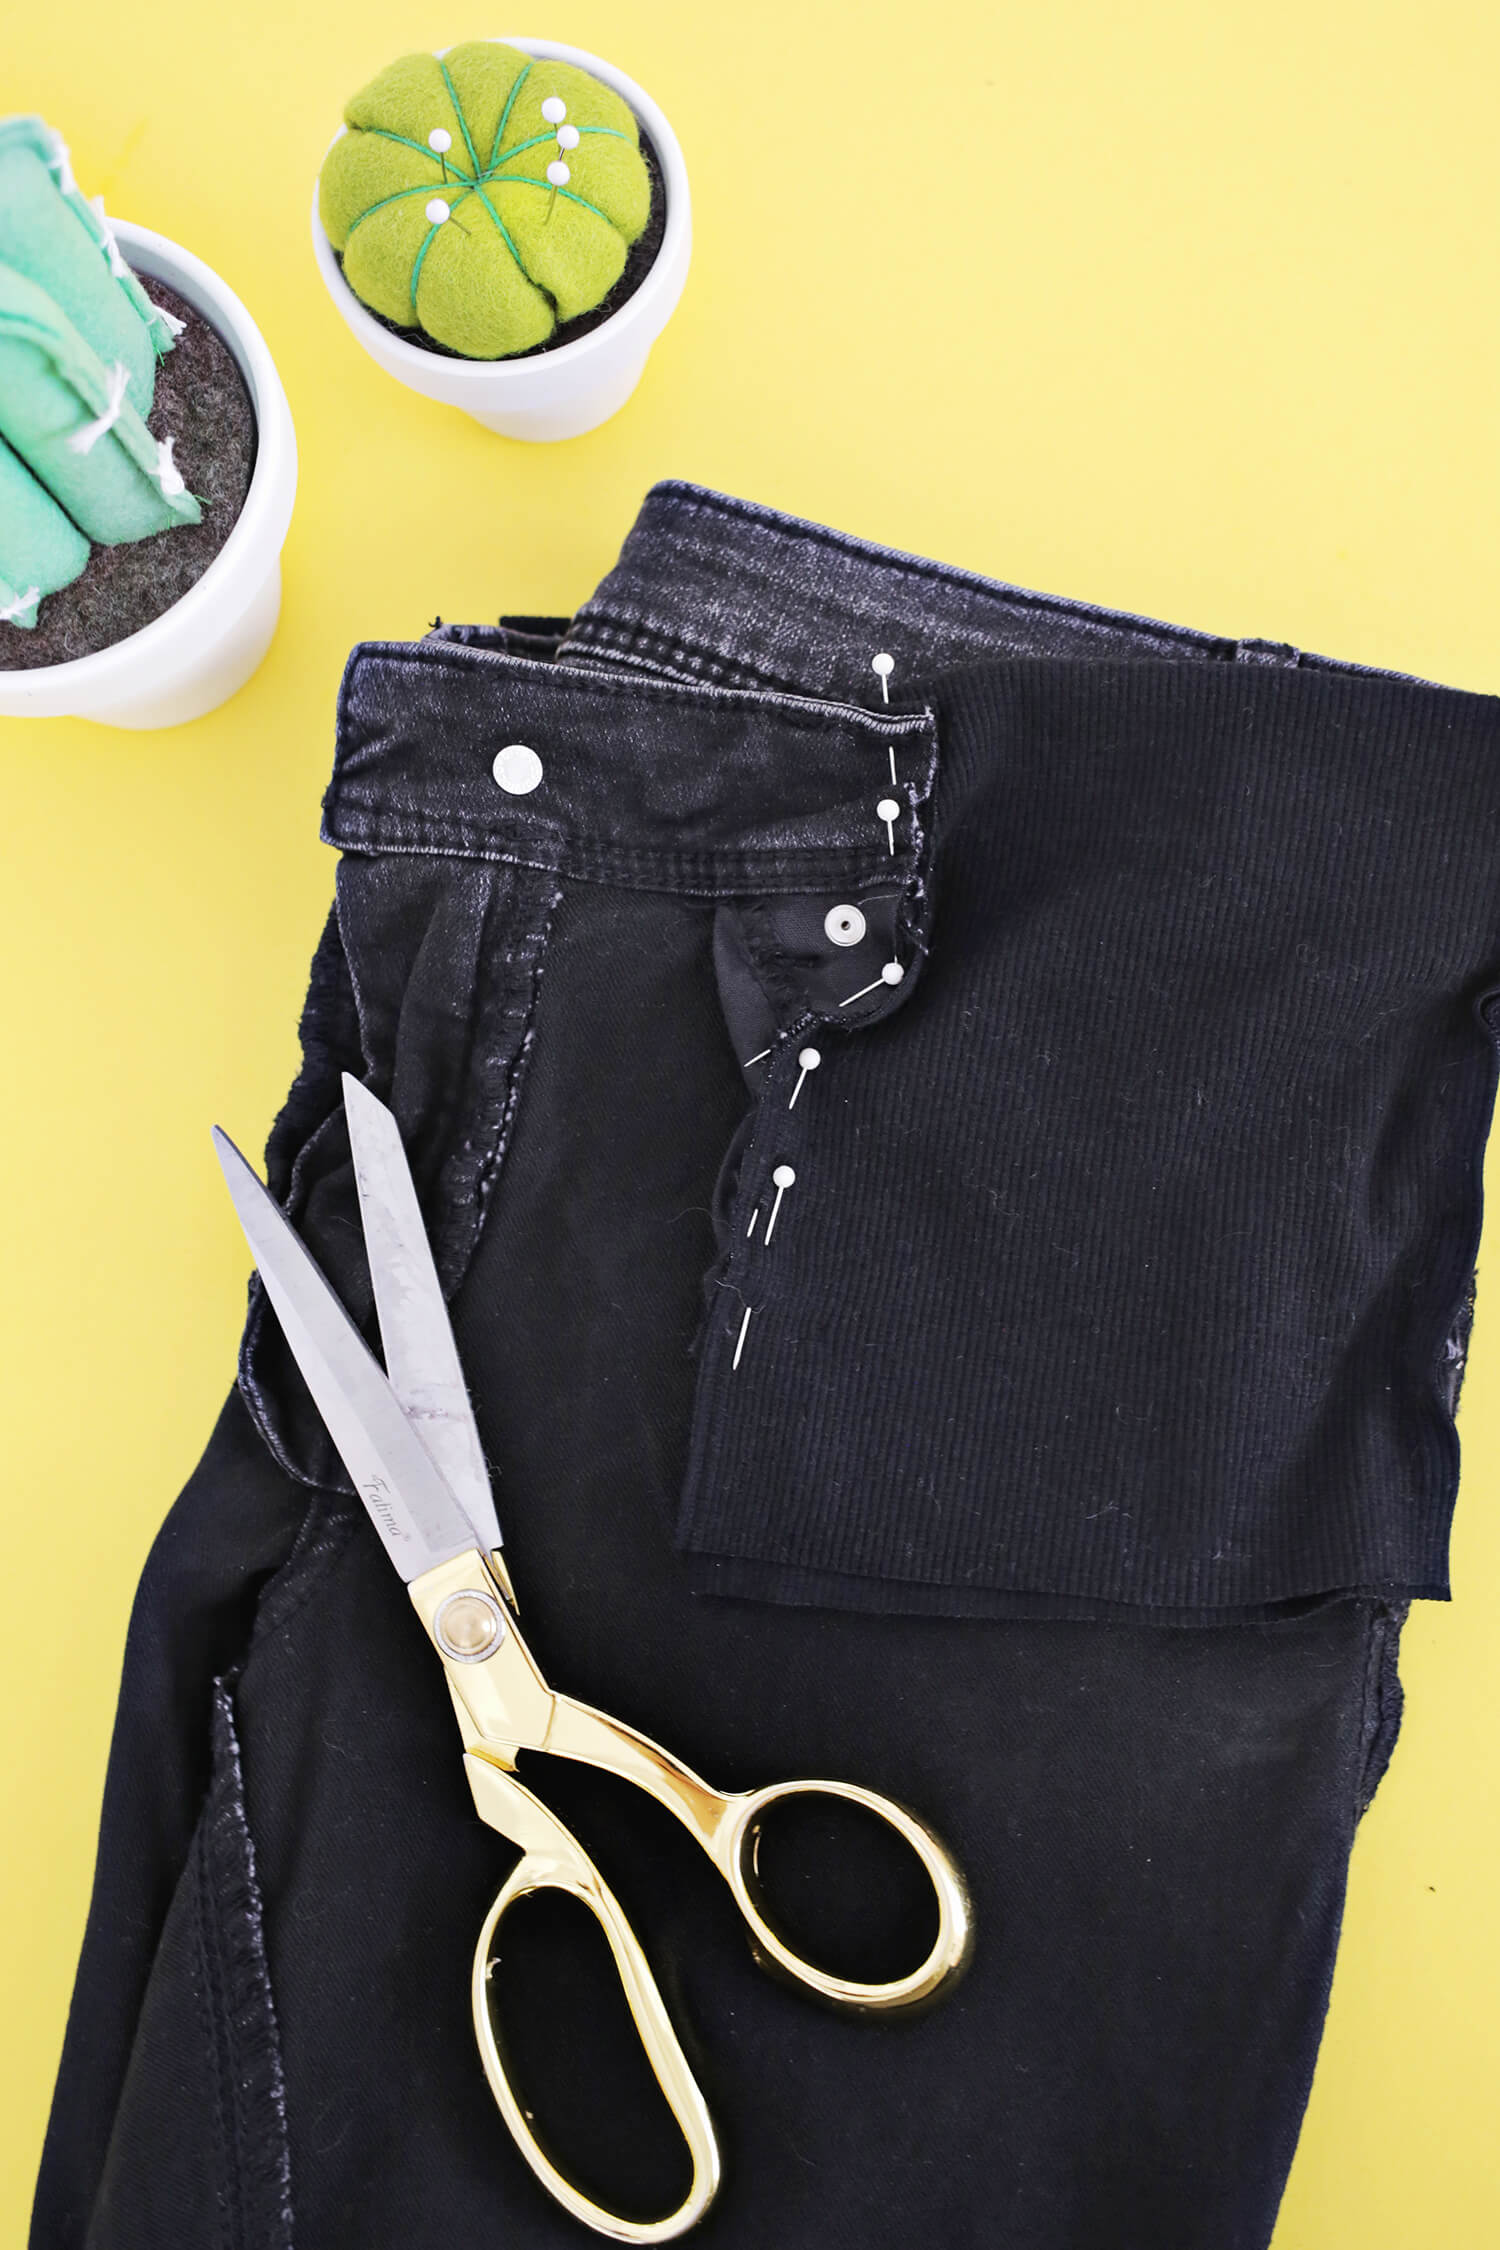 make your own maternity jeans! - a beautiful mess